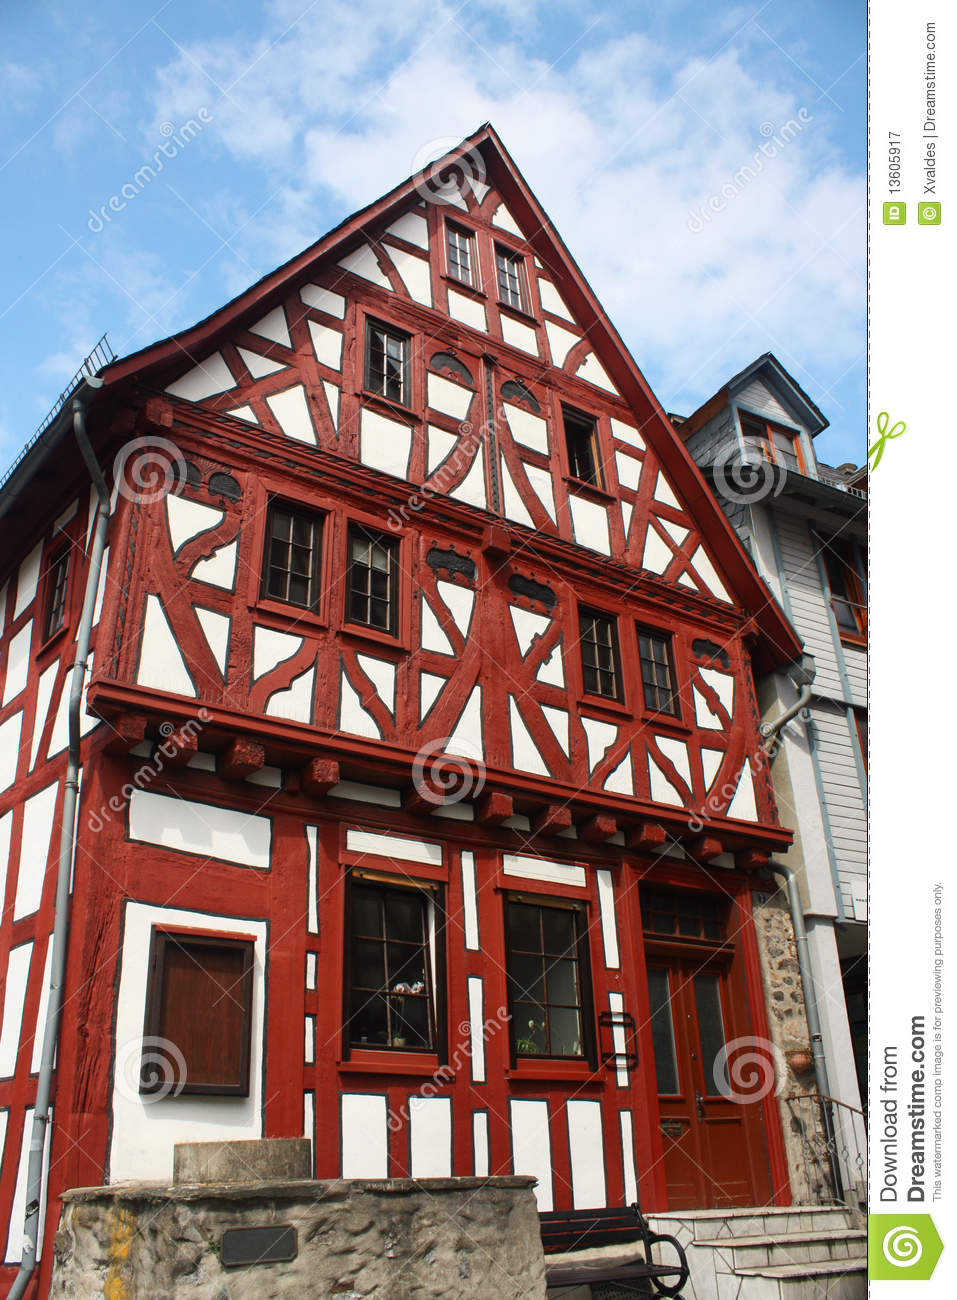 German House Designs: Old House In Germany Royalty Free Stock Photography